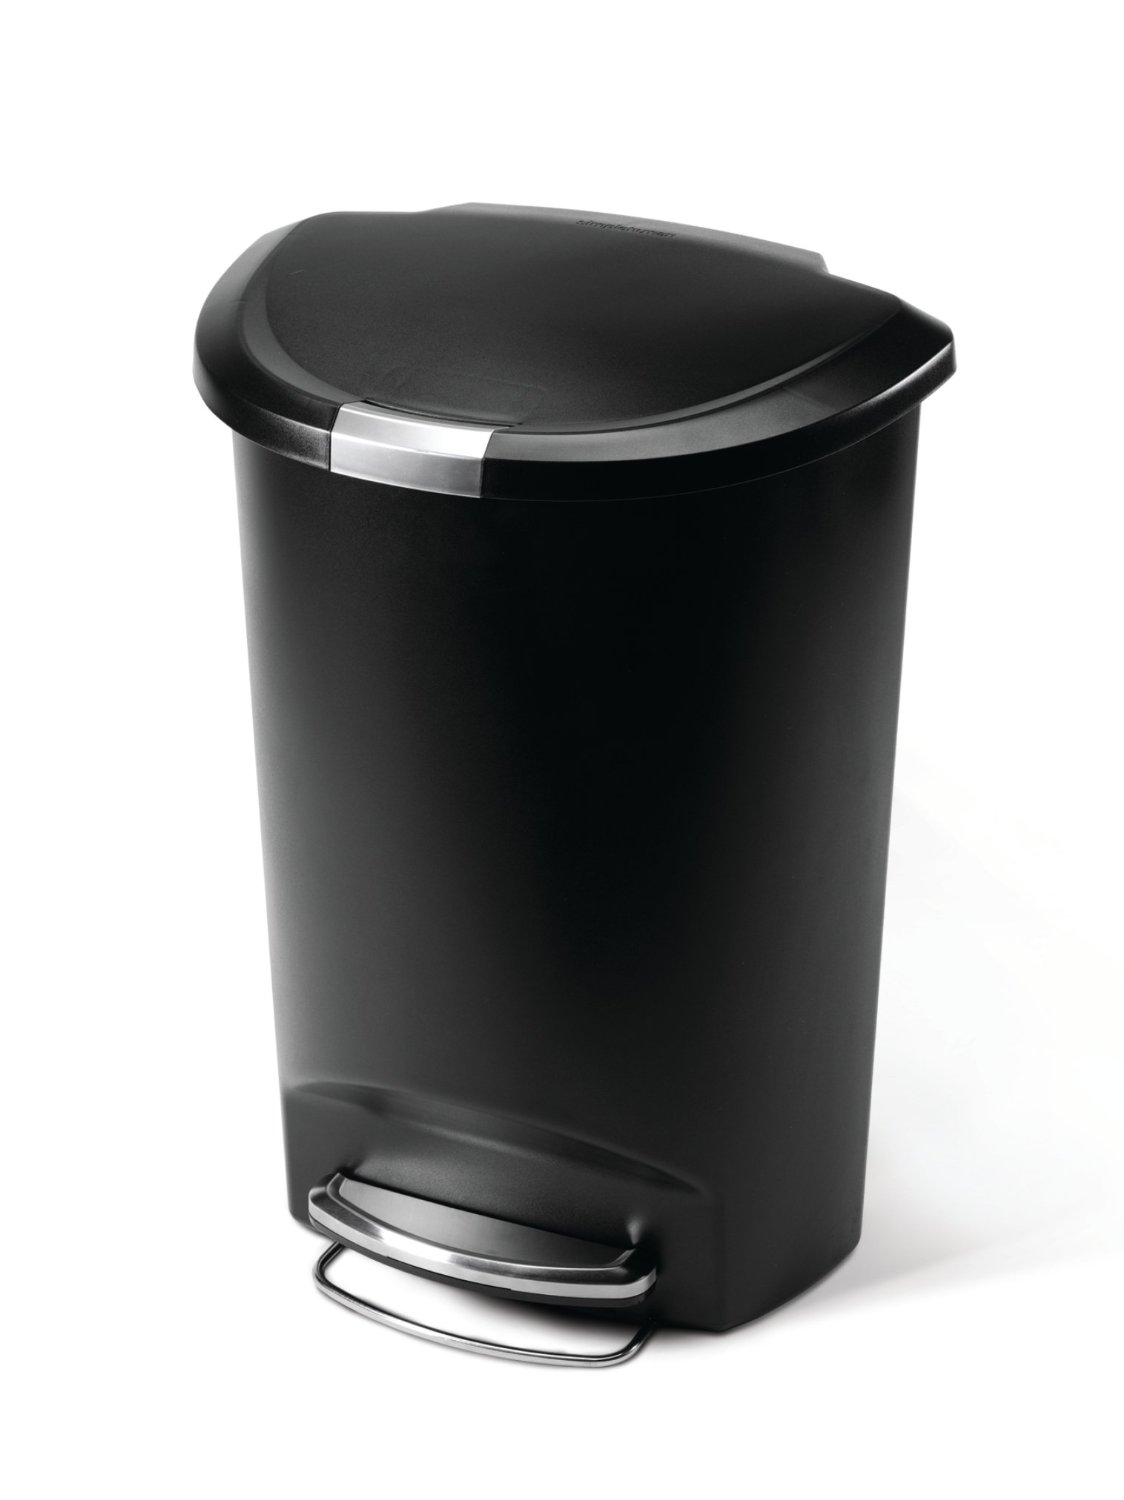 Trash Cans For Kitchen Top 5 Best Kitchen Trash Cans Review 2018 Top 10 Review Of